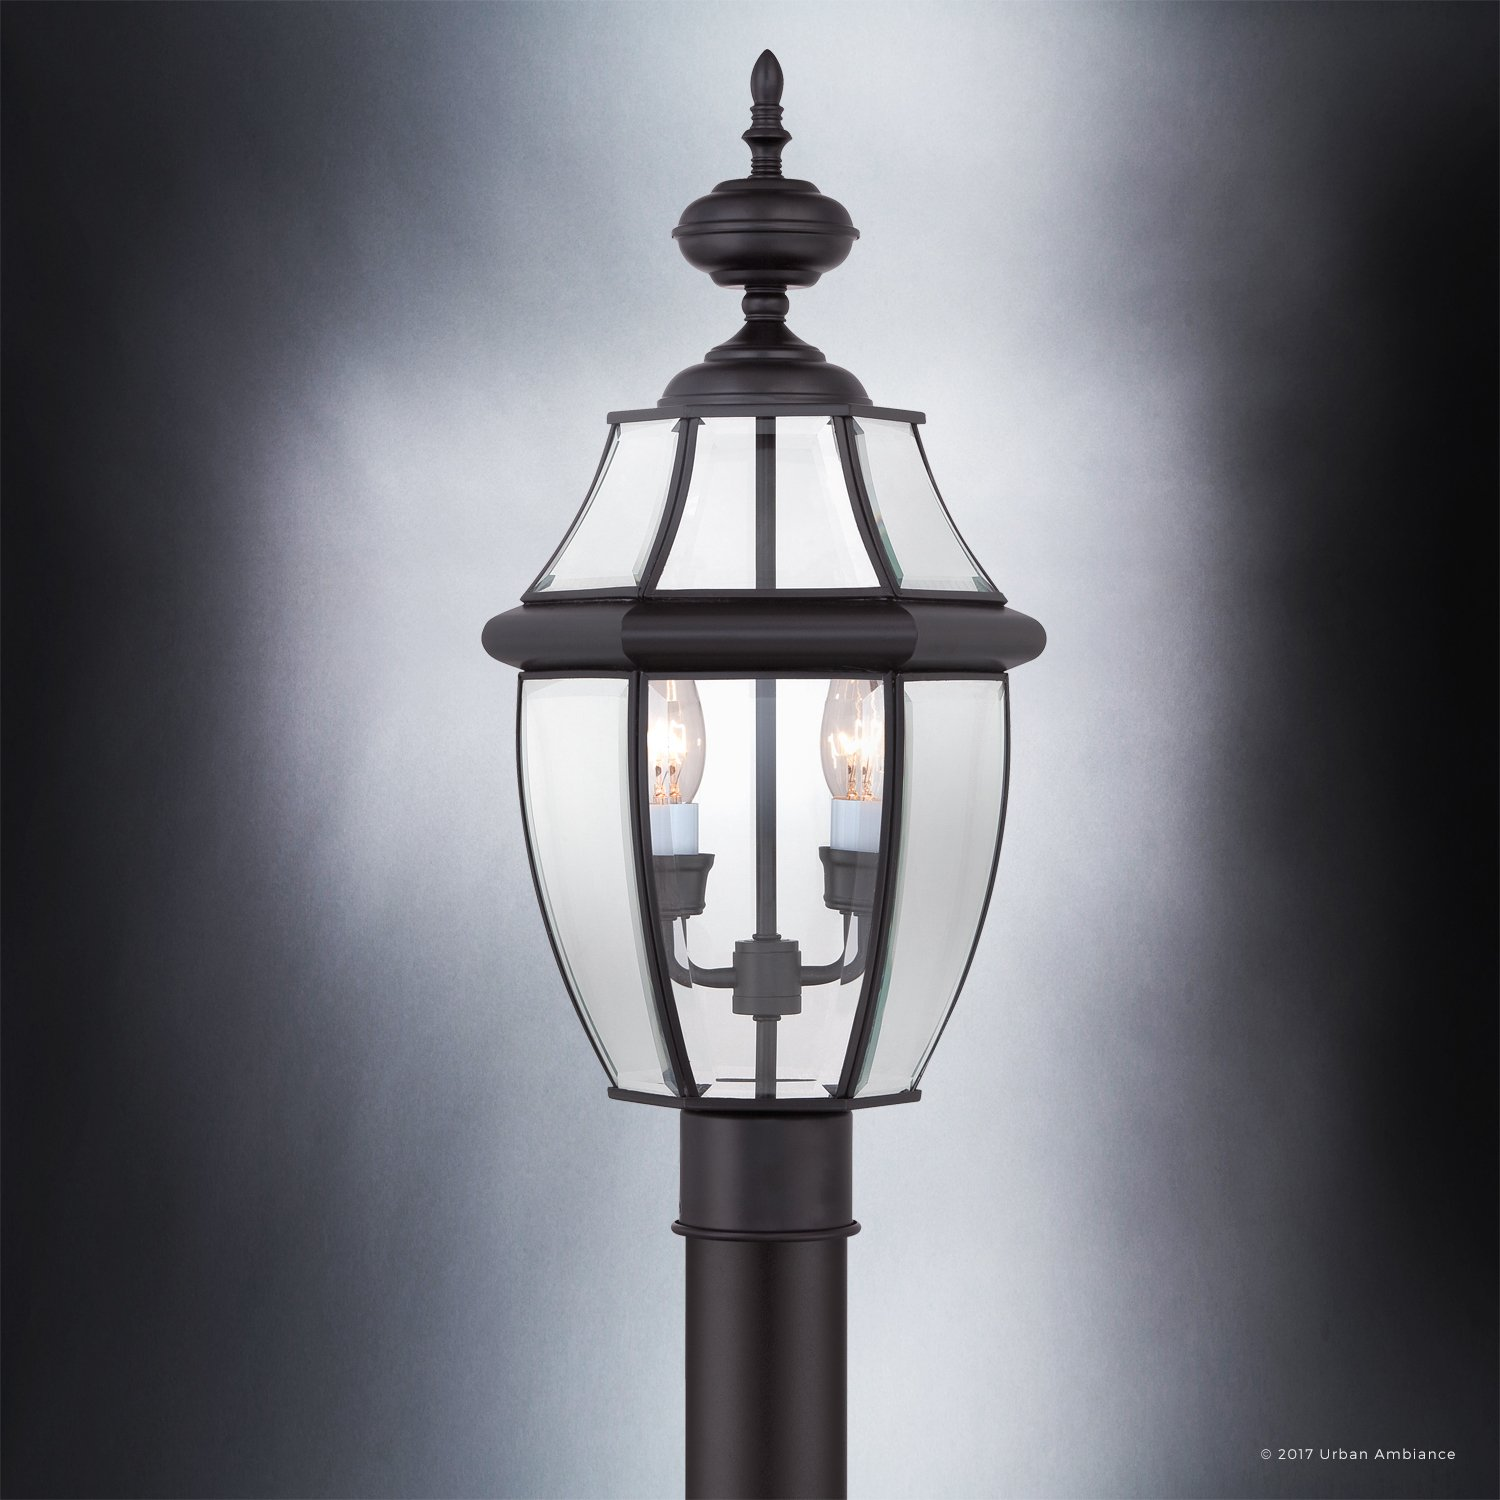 Luxury Colonial Outdoor Post Light, Large Size: 21''H x 11''W, with Tudor Style Elements, Versatile Design, High-End Black Silk Finish and Beveled Glass, UQL1148 by Urban Ambiance by Urban Ambiance (Image #4)